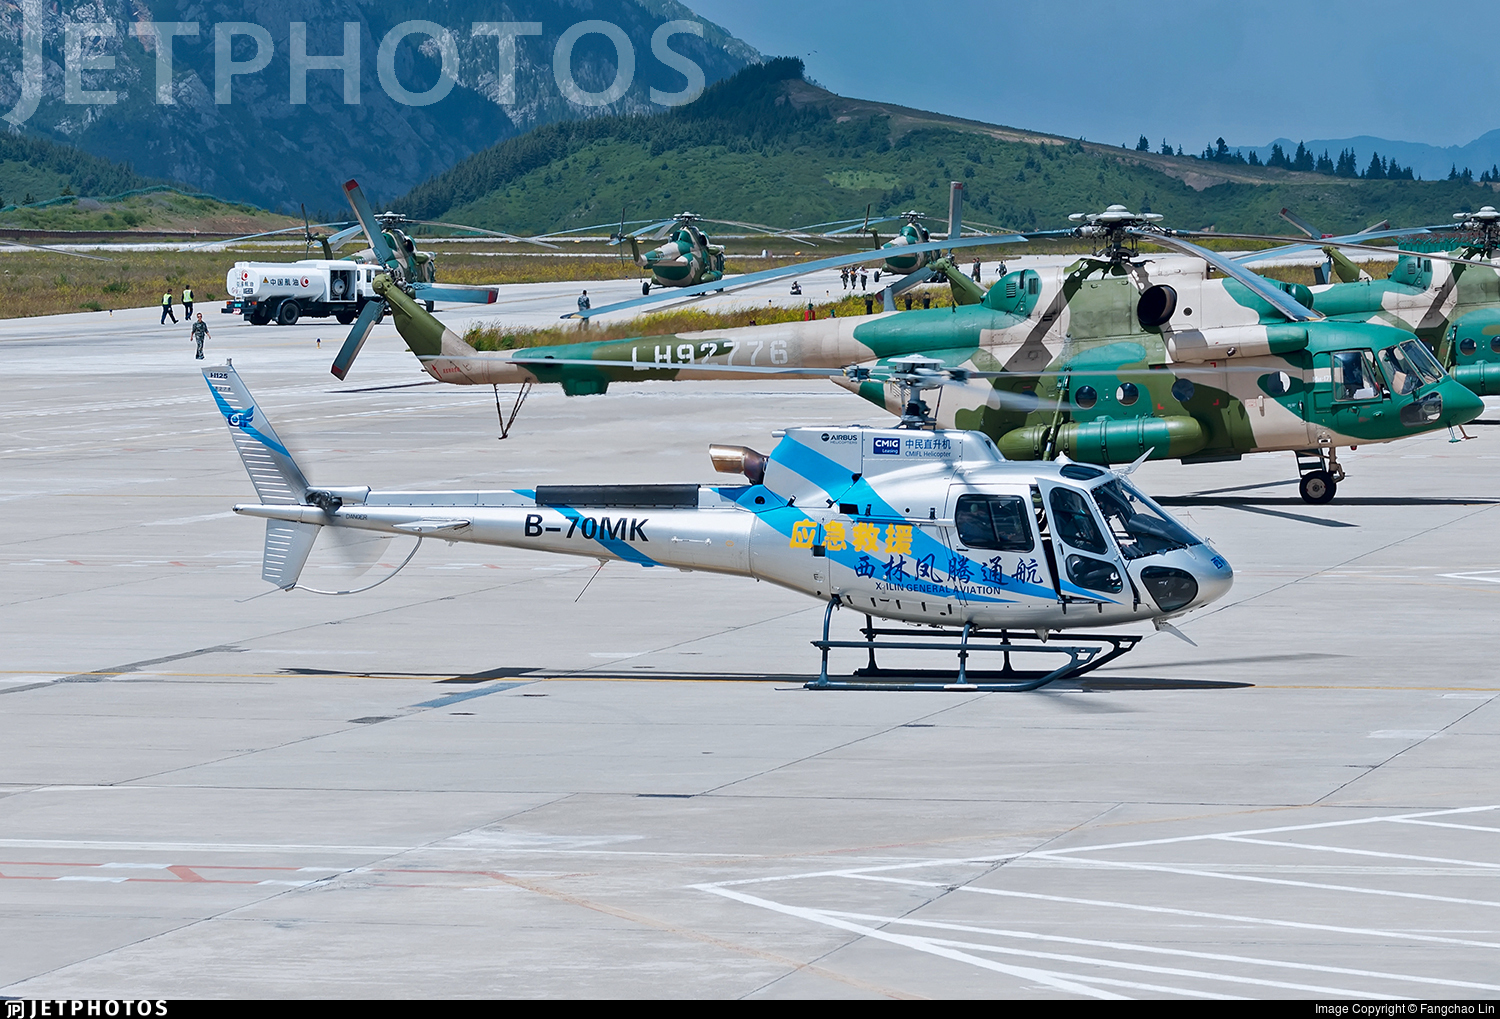 B-70MK - Airbus Helicopters H125 - Sichuan Xiling Fengteng General Aviation